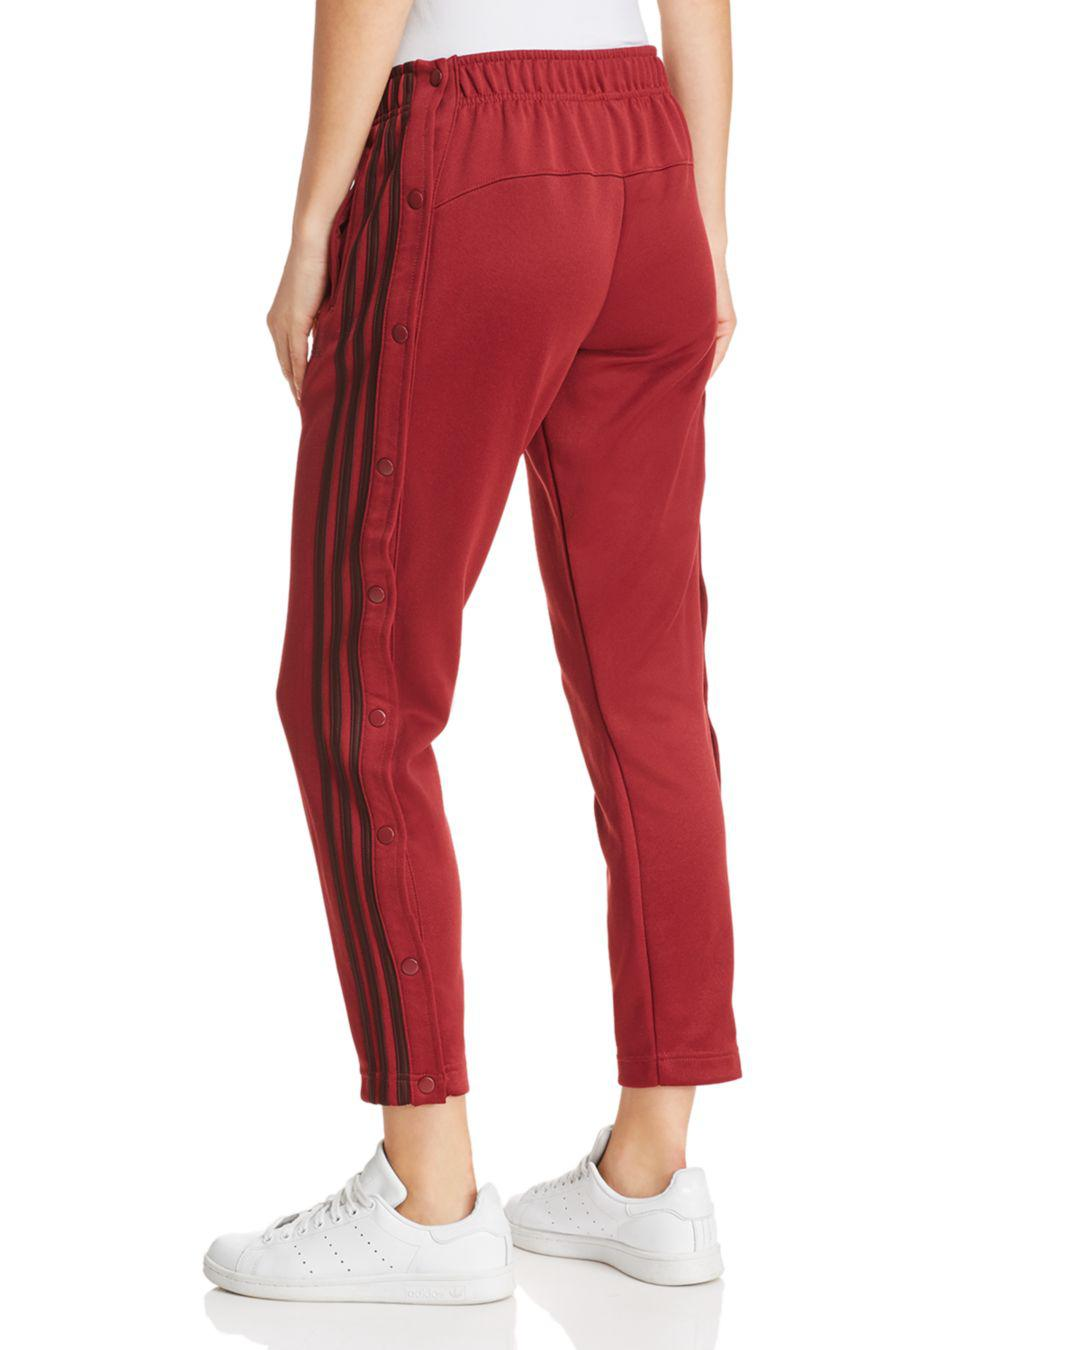 23fae5acdf5f Lyst - adidas Side-snap Ankle Track Pants in Red